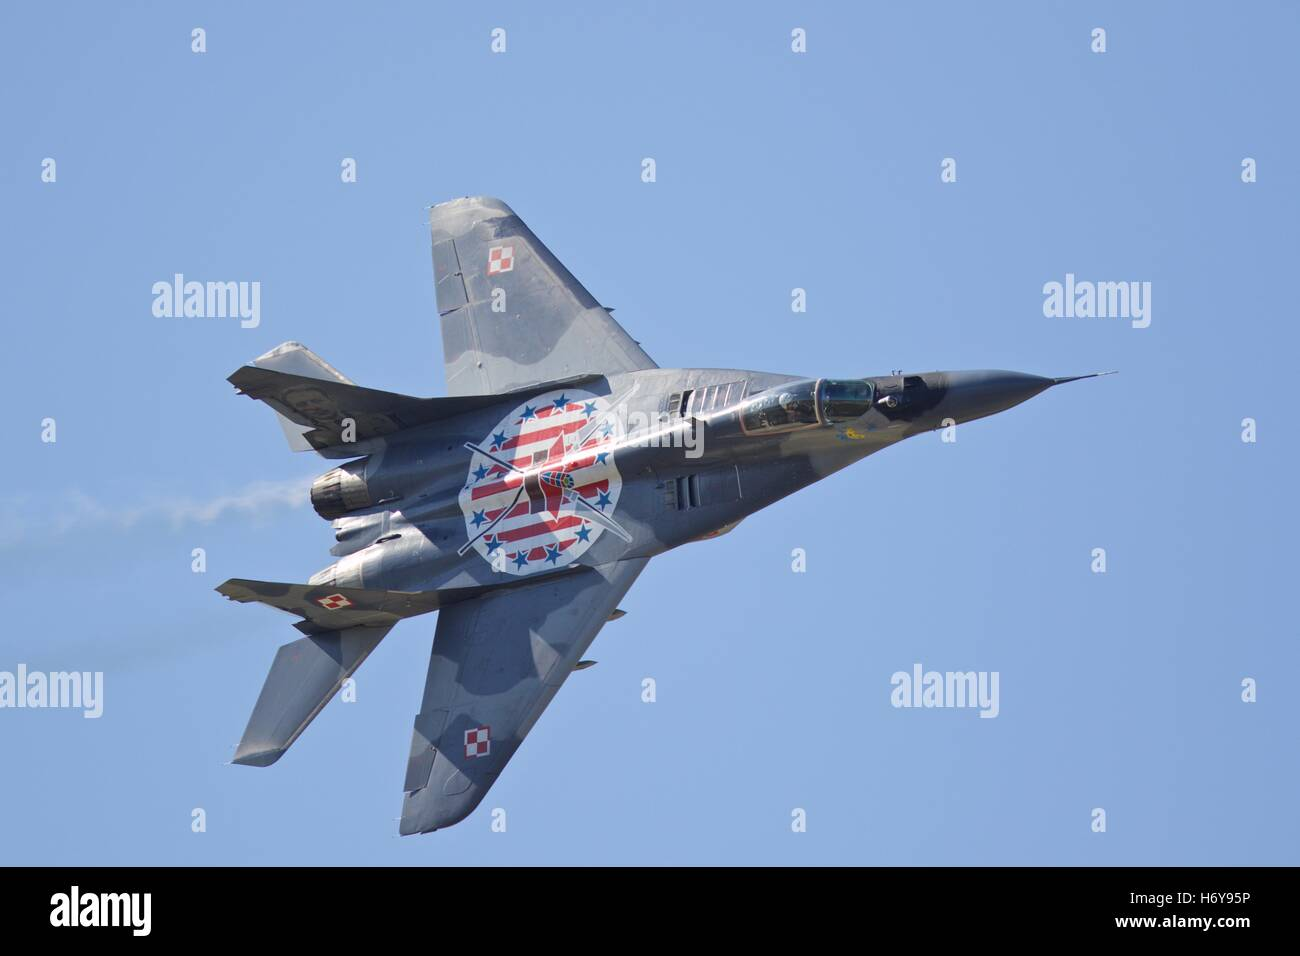 A Polish Air Force Mikoyan MiG-29A Stock Photo